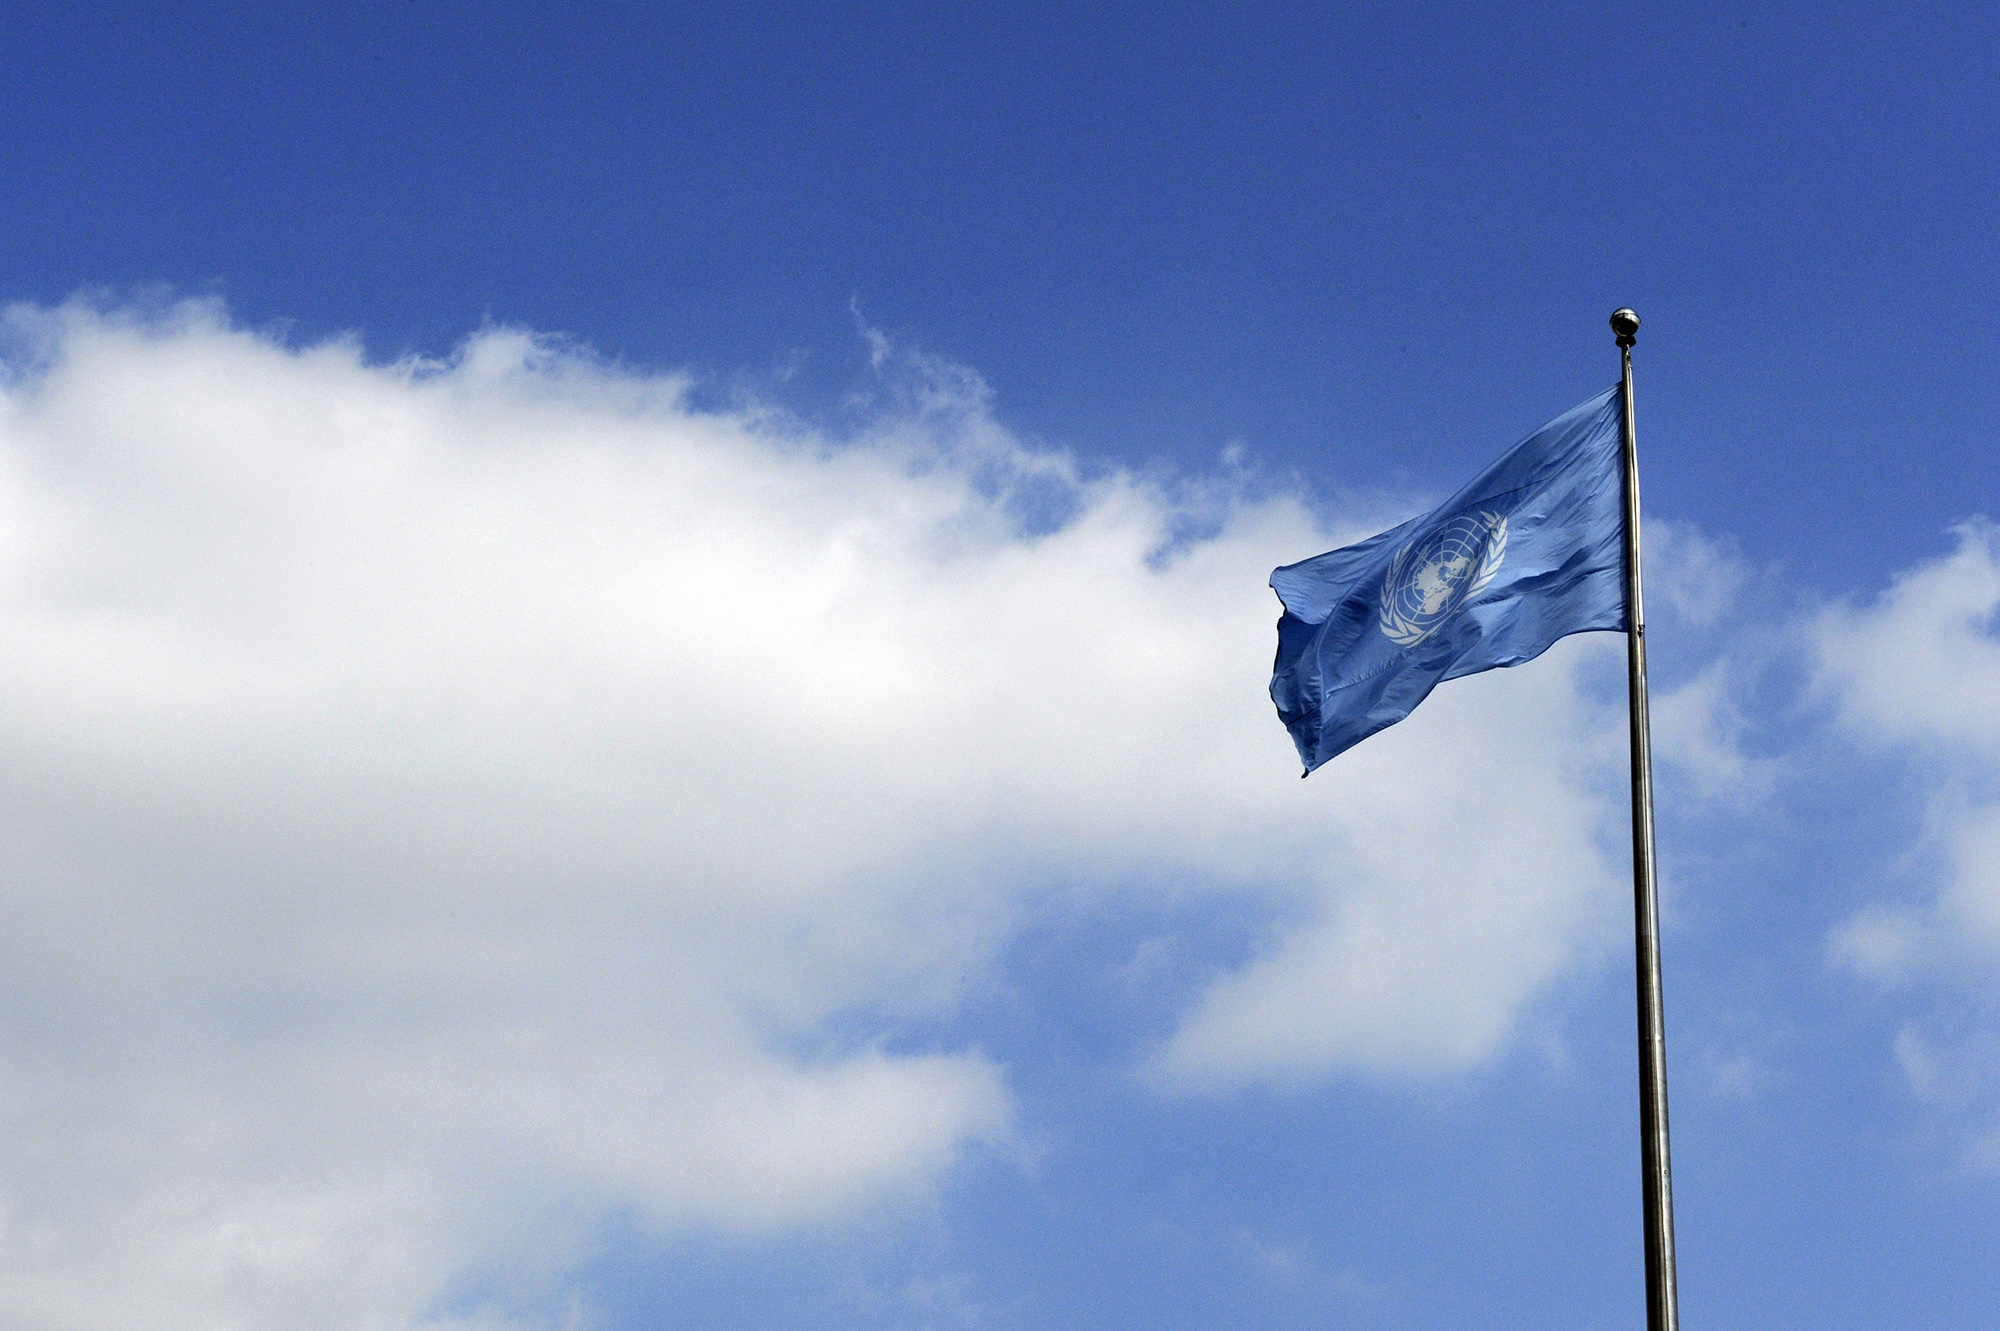 The United Nations flag. UN Photo/Mark Garten